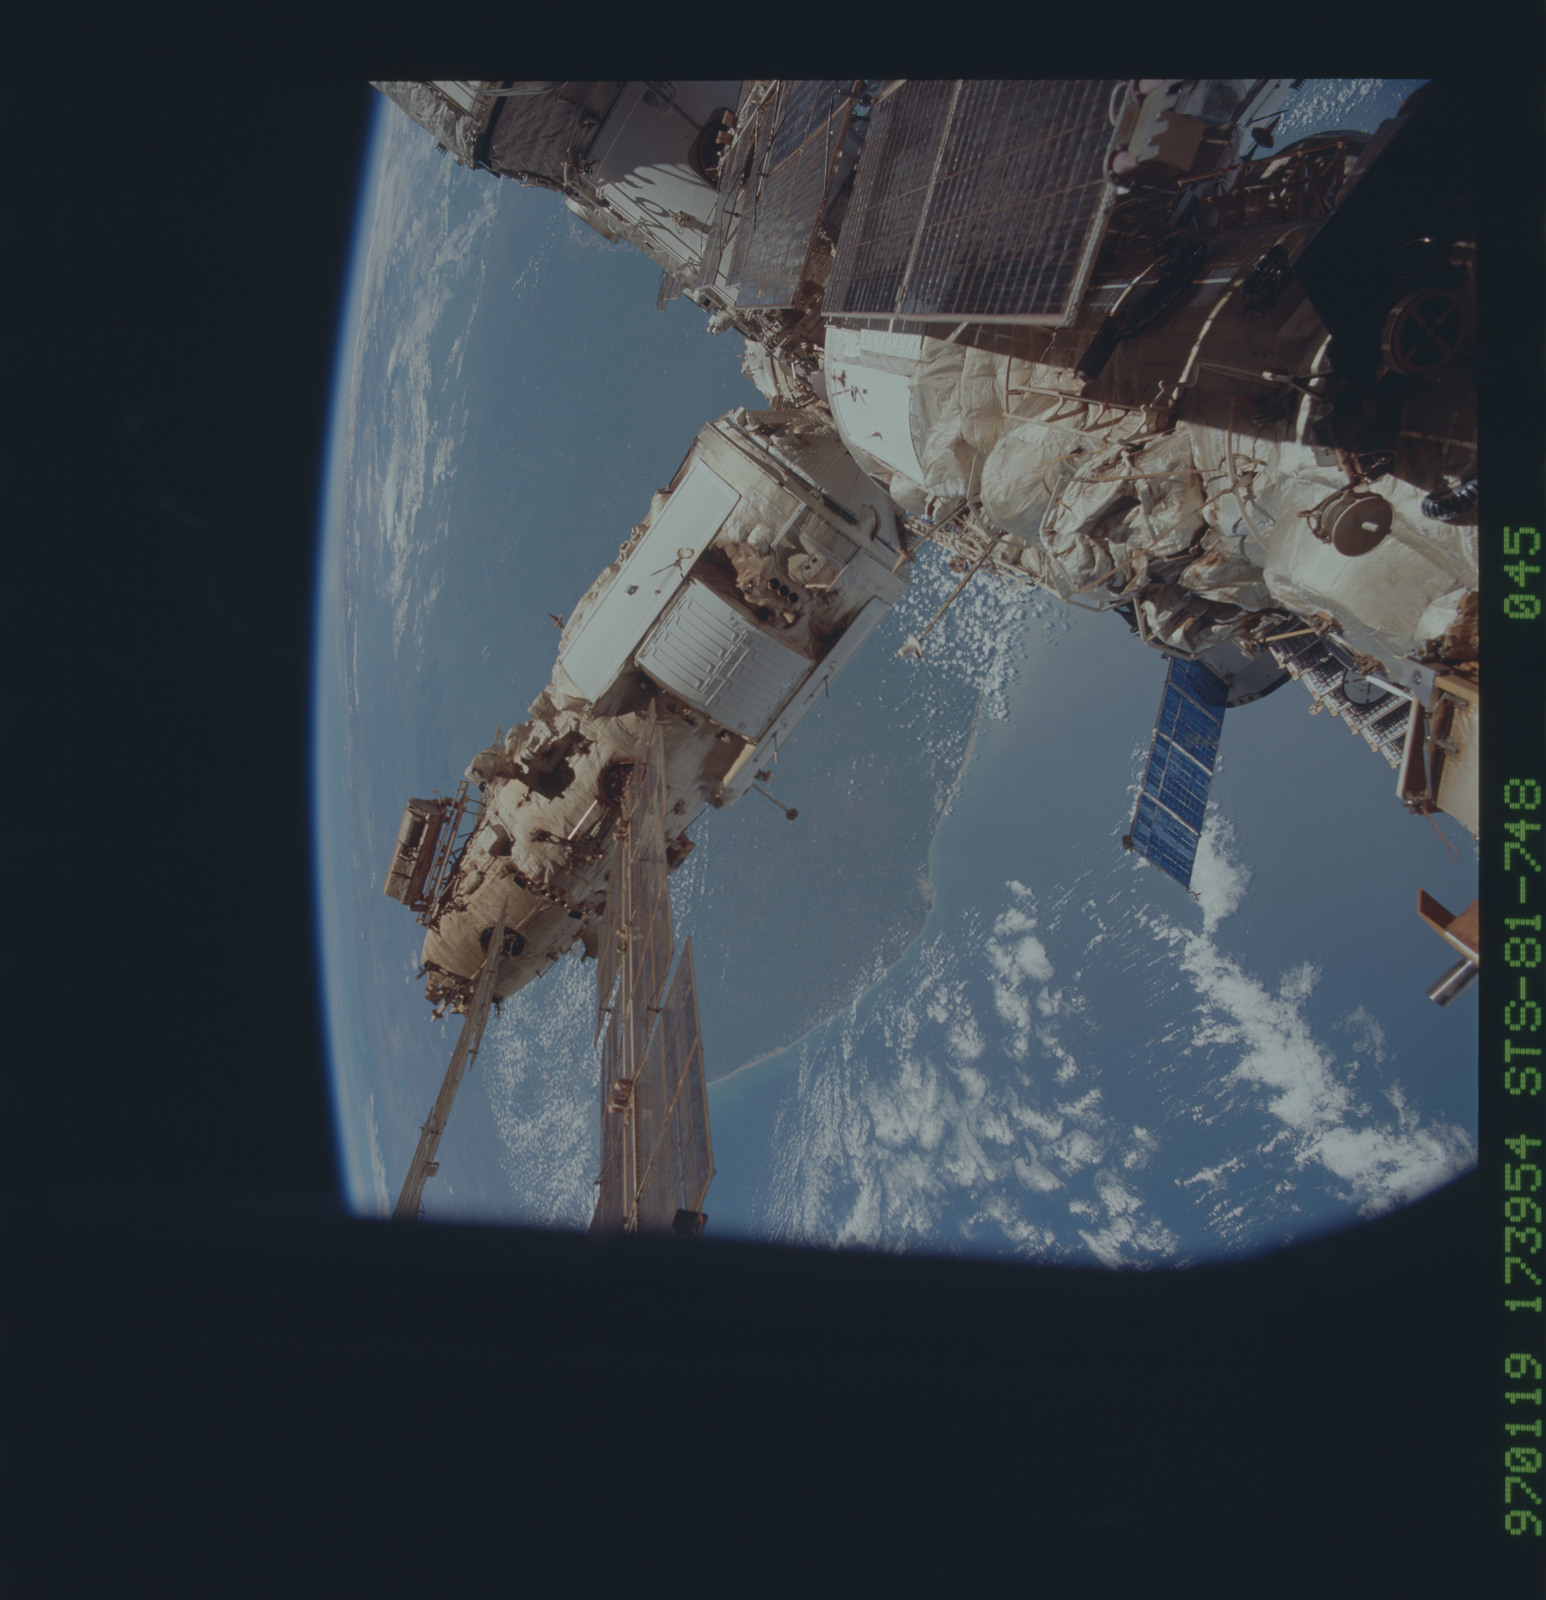 STS081-748-045 - STS-081 - Exterior views of the Mir space station taken after rendezvous